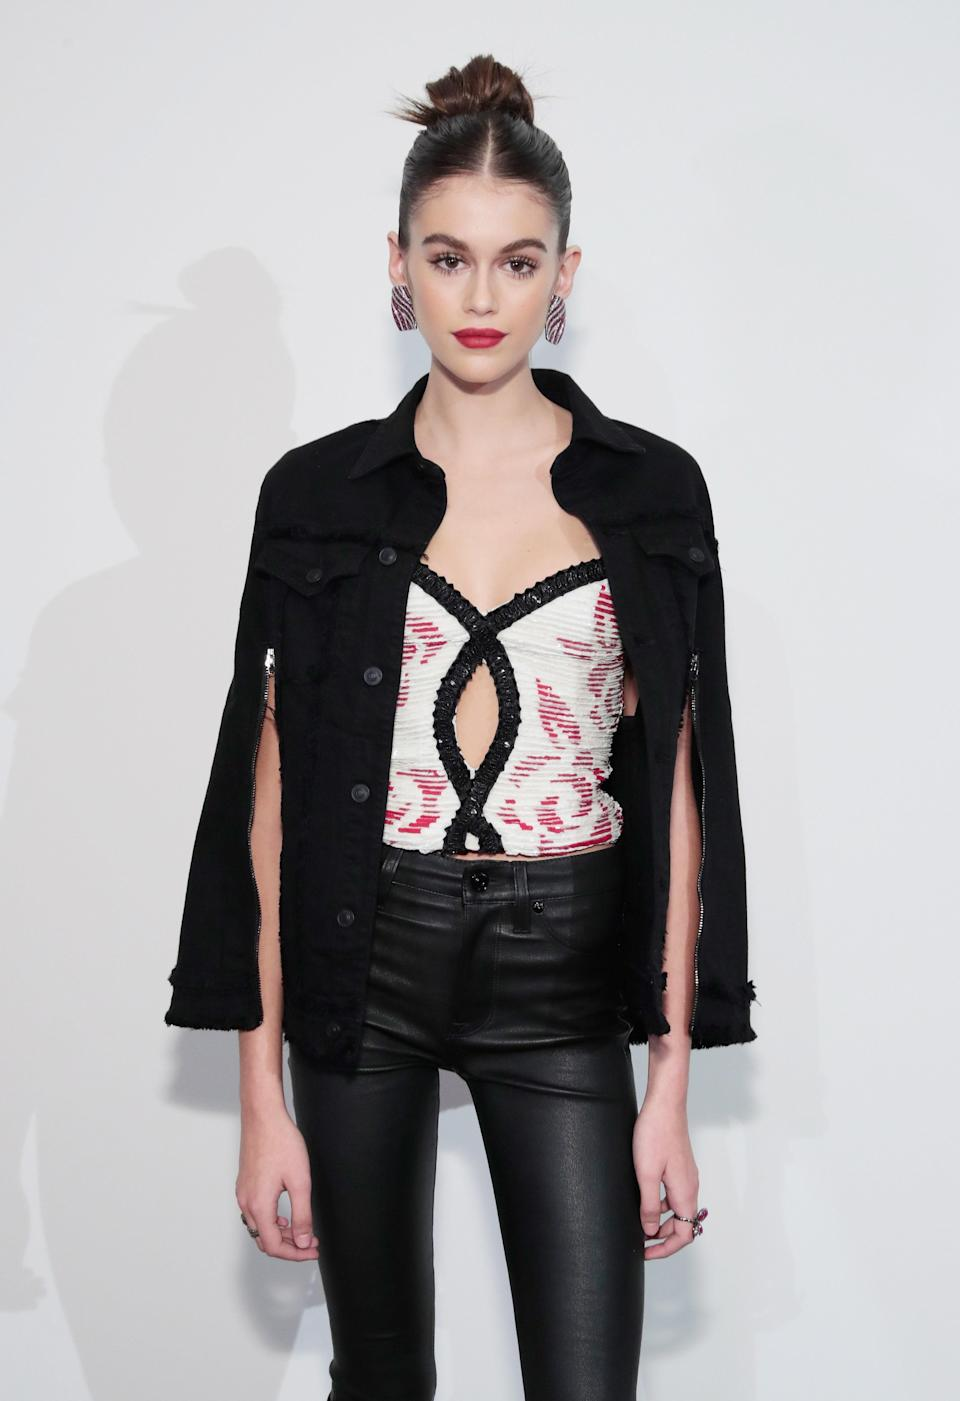 The outfit she wore to host the Hudson Jean SS18 preview is one of her most unique to date.